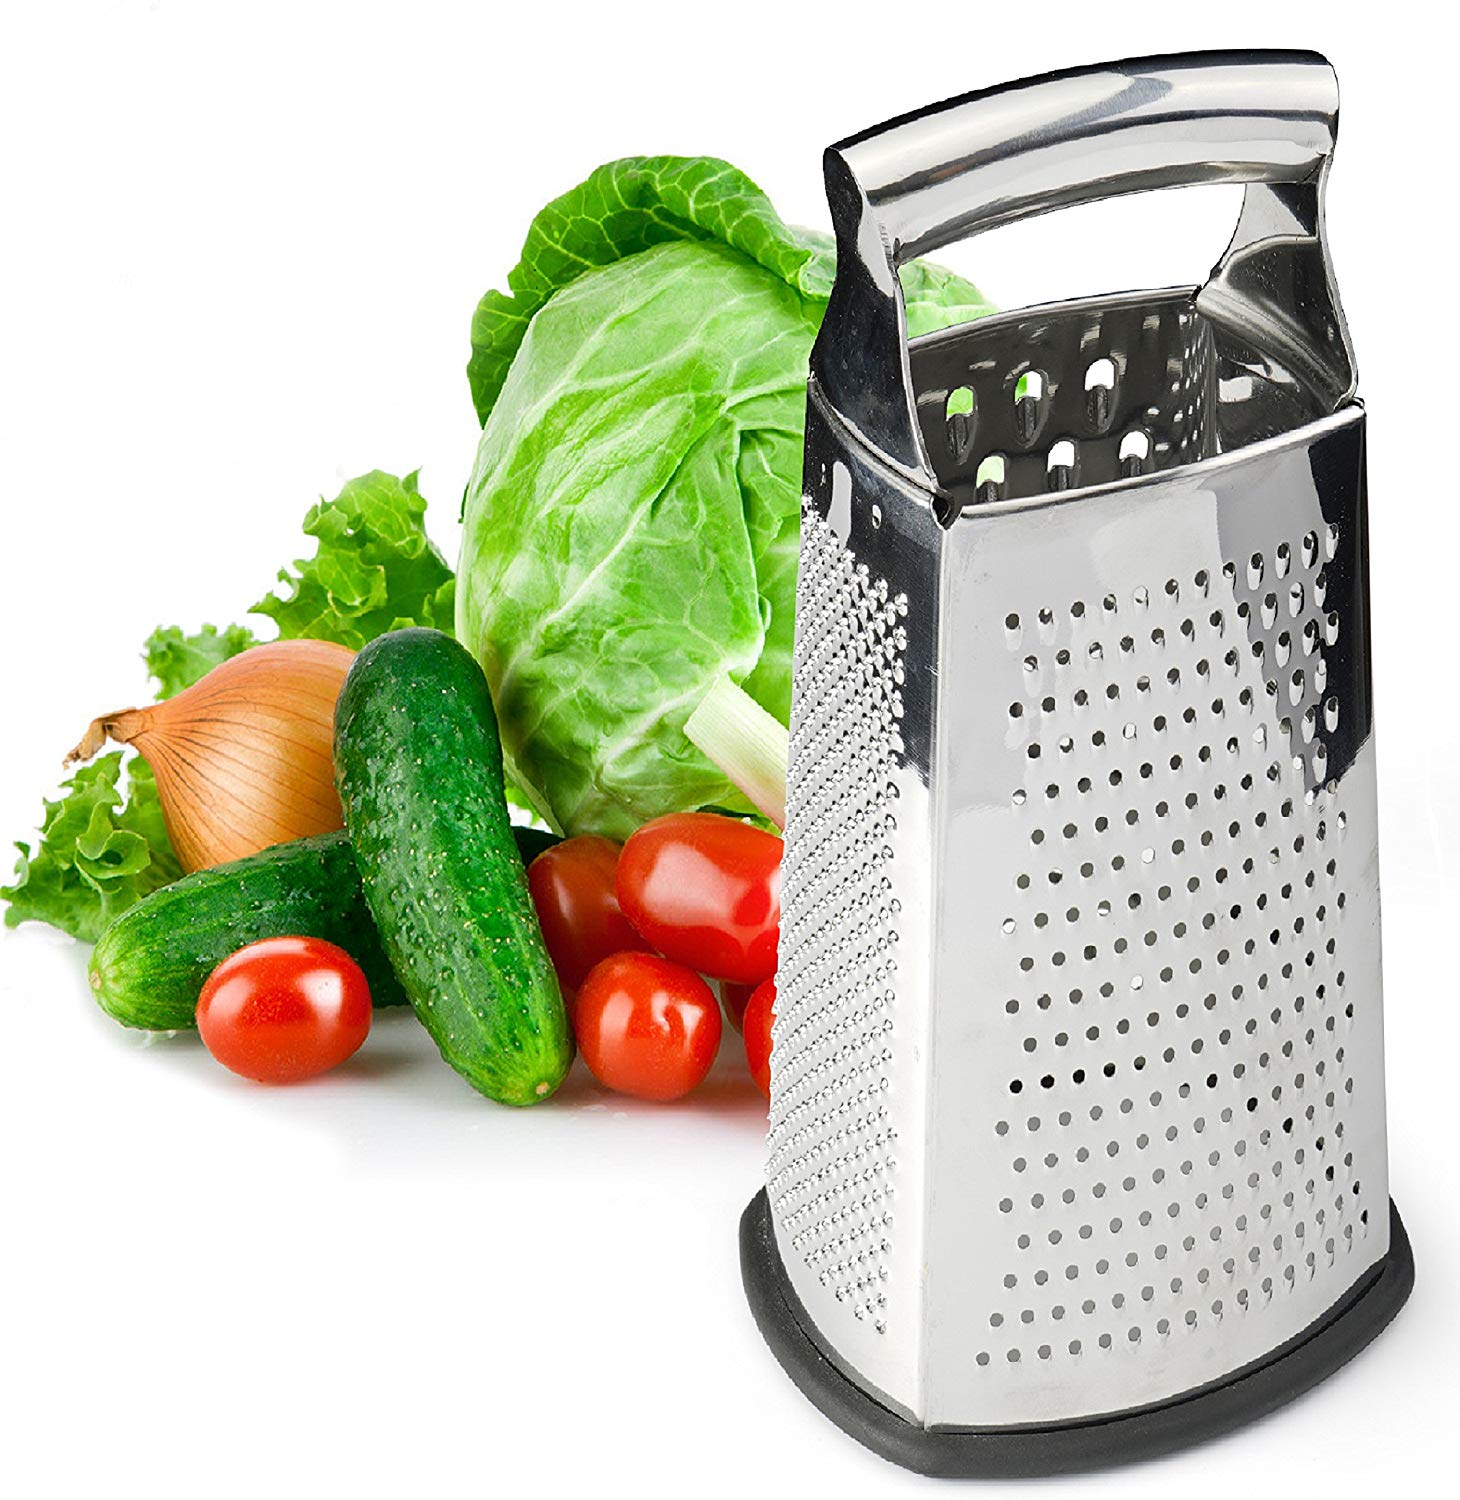 Spring Chef Box Grater, 4-Sided Stainless Steel Large 10-inch Grater for Parmesan Cheese, Ginger, Vegetables